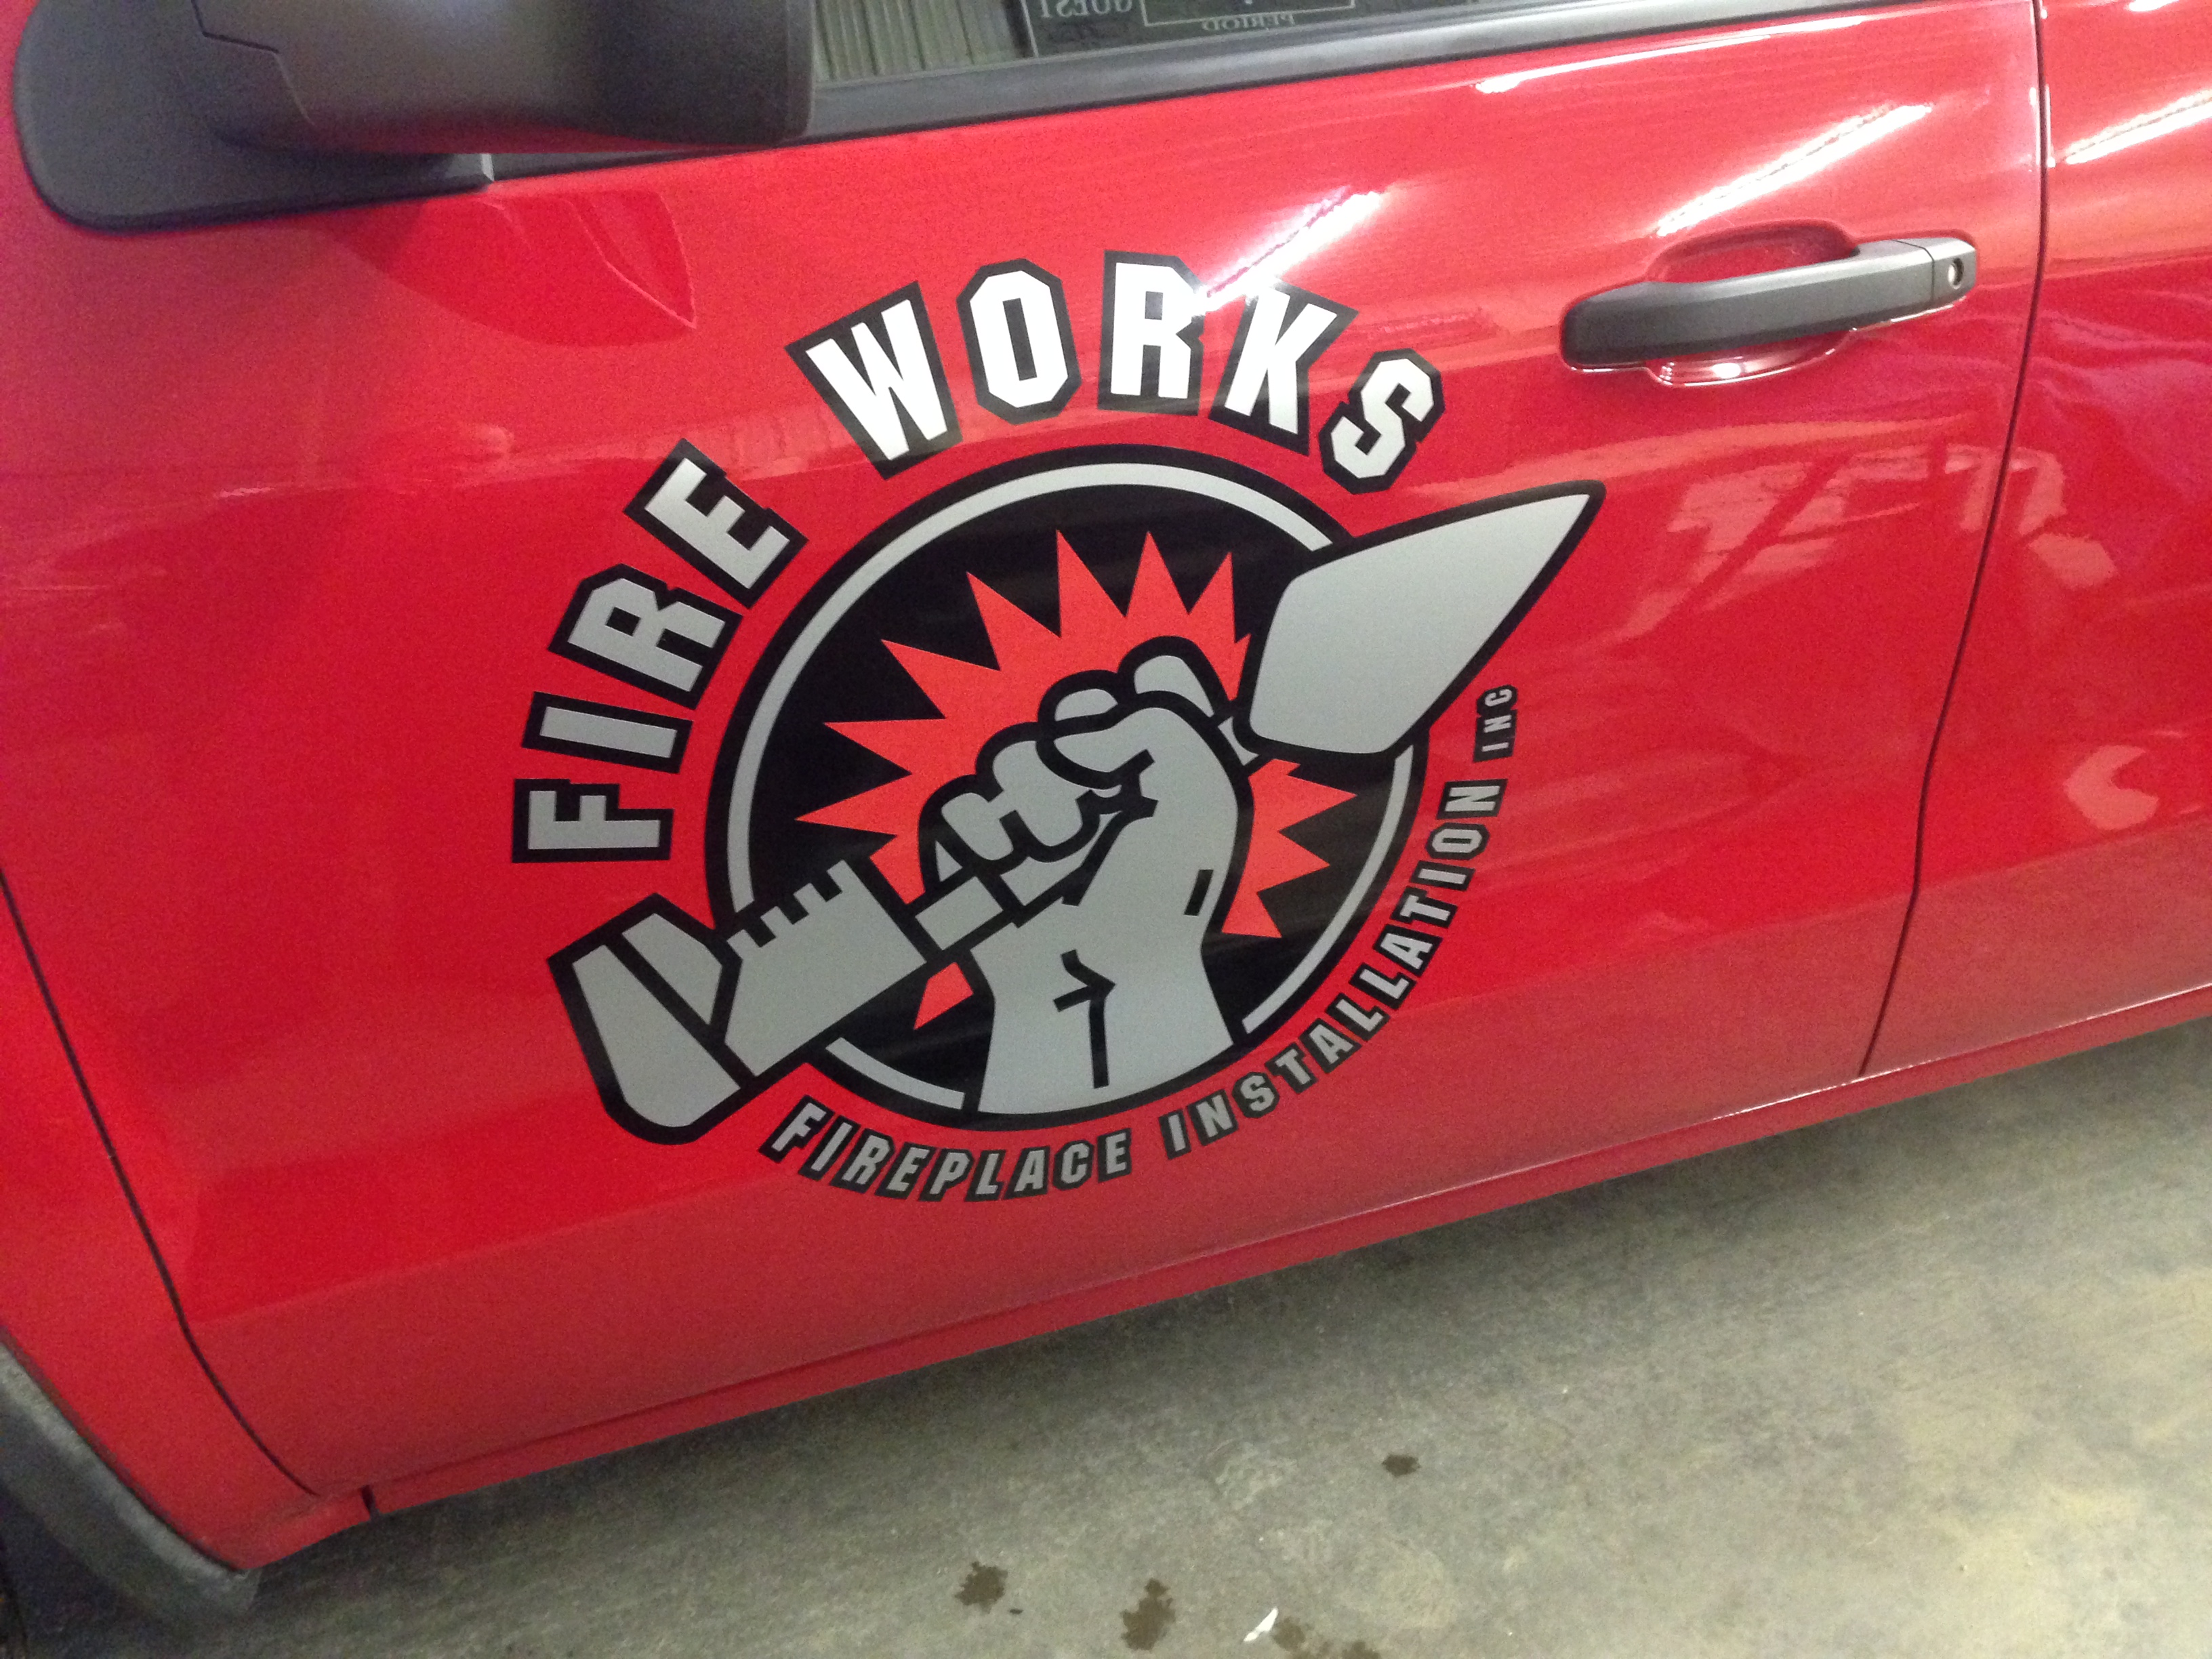 Fire Works Fireplace Installation Car Decals | Signmax.com